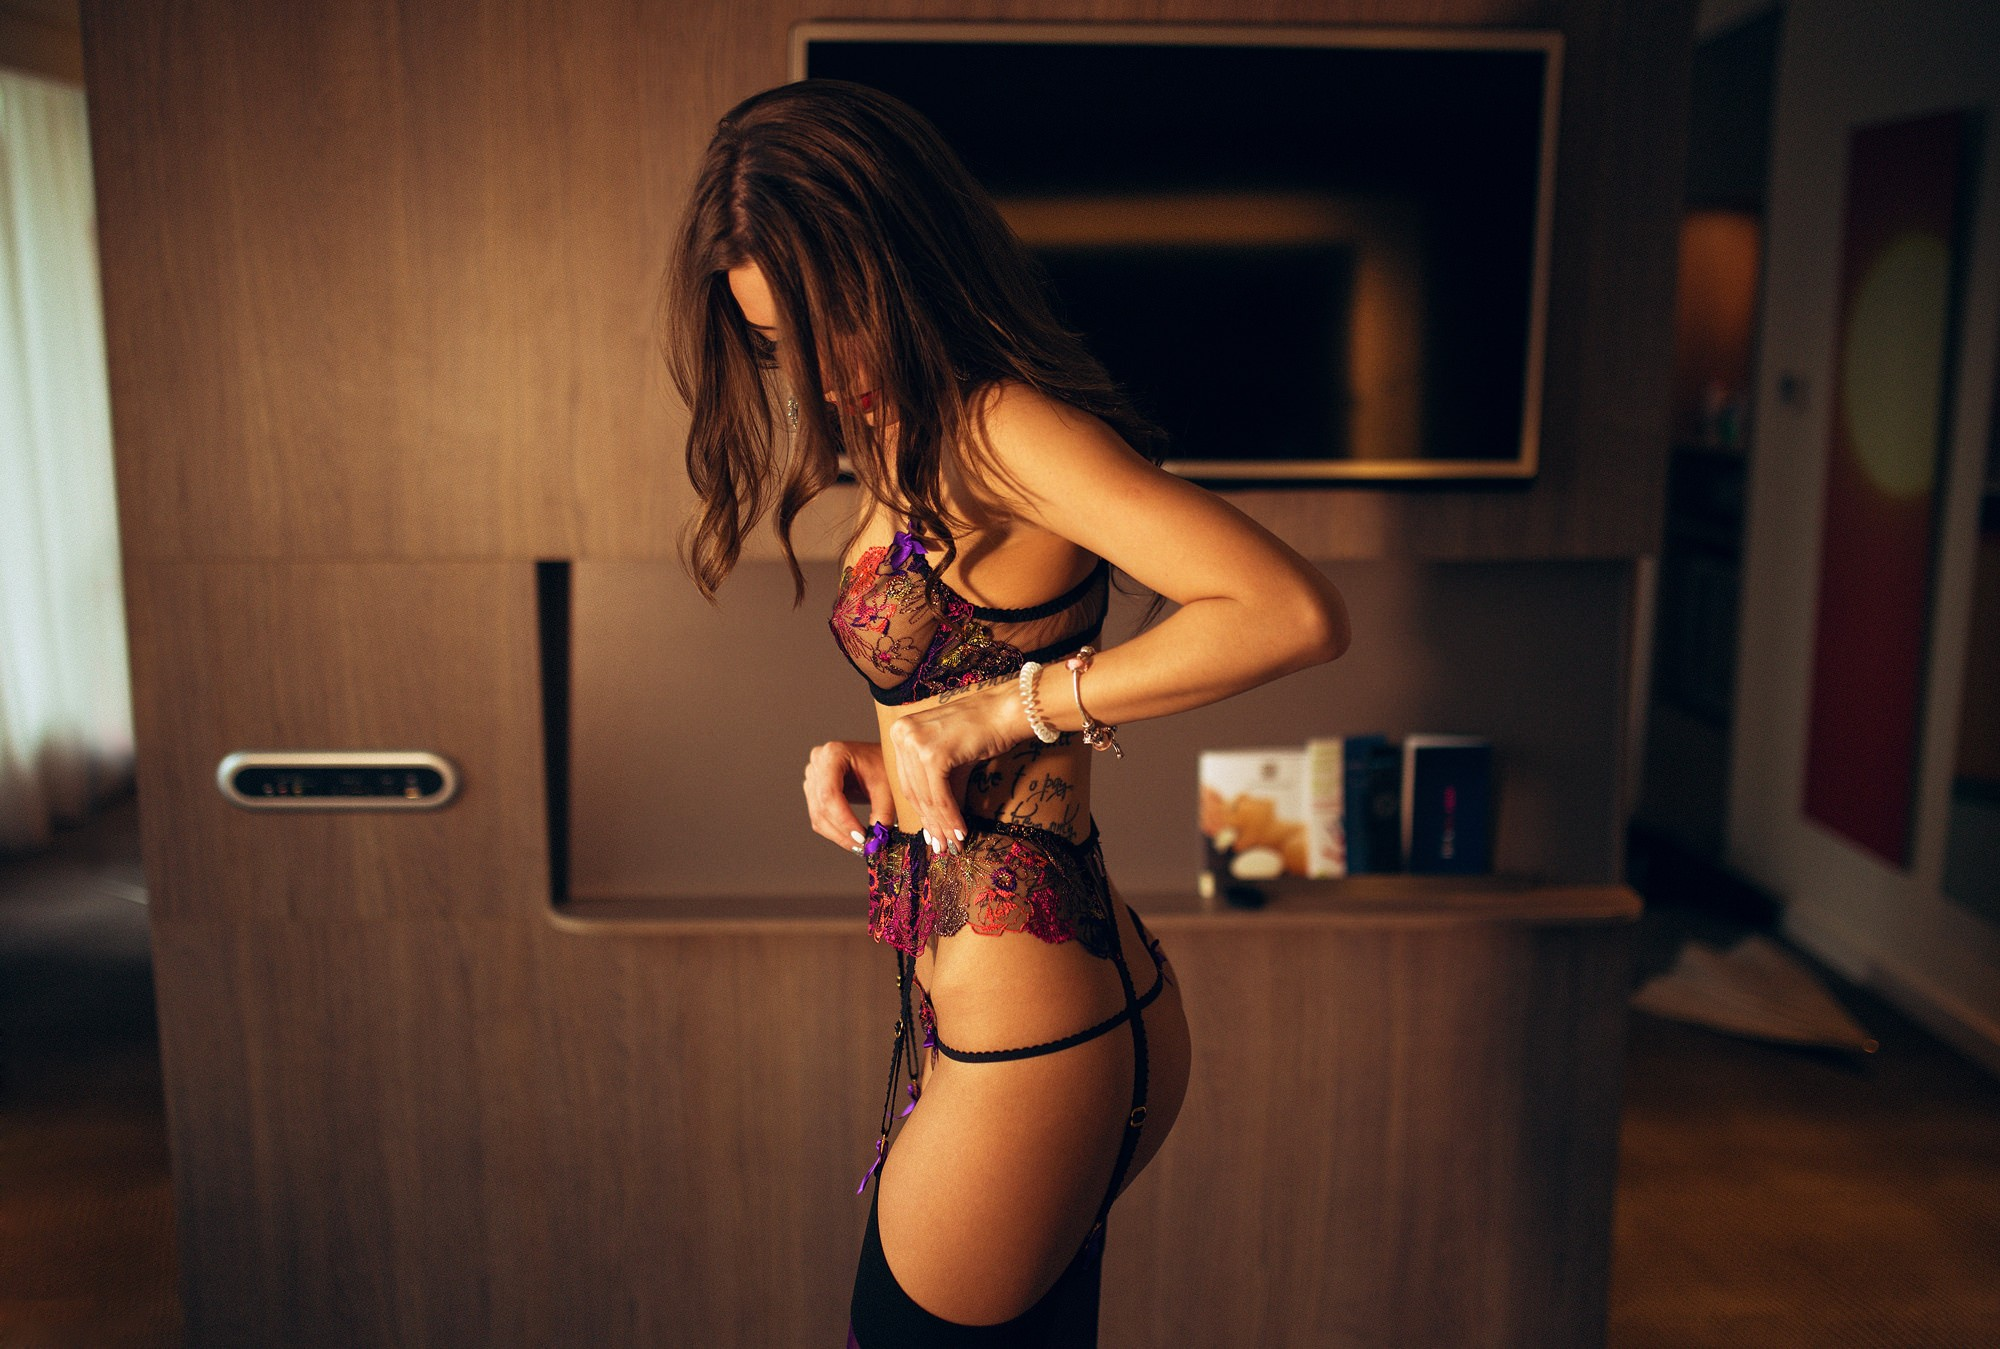 cool woman in lingerie